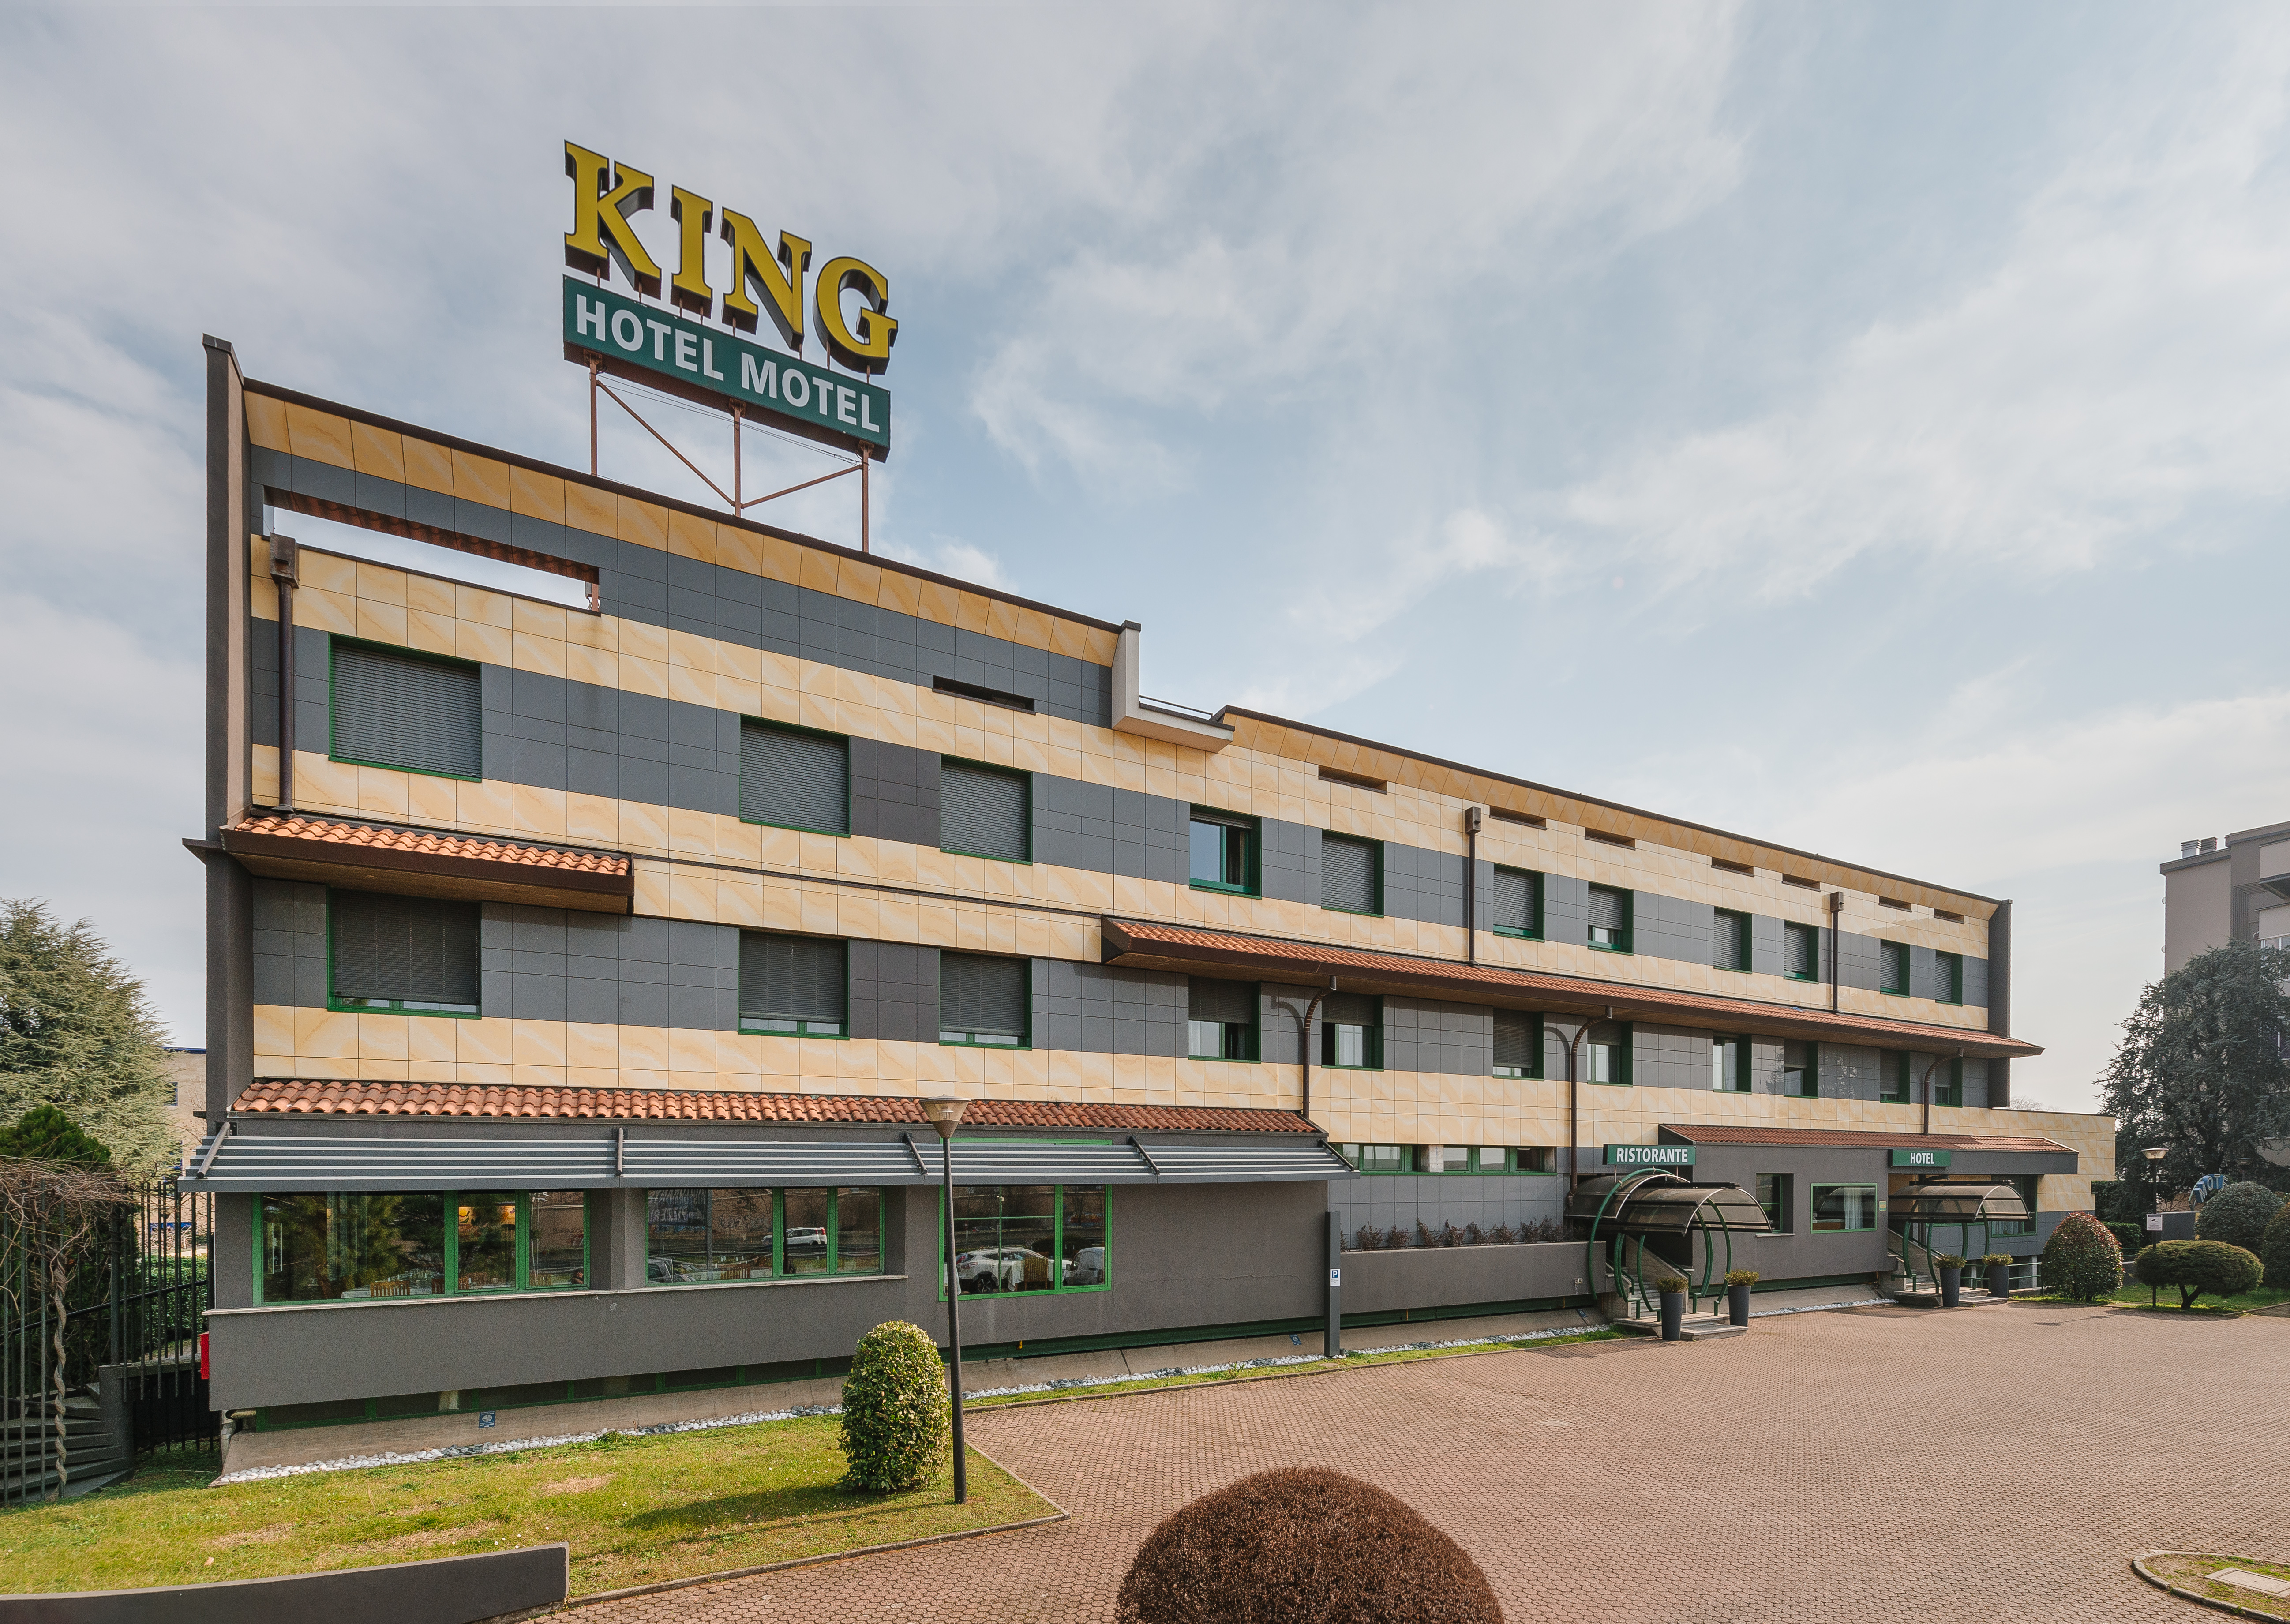 King Hotel, Monza and Brianza